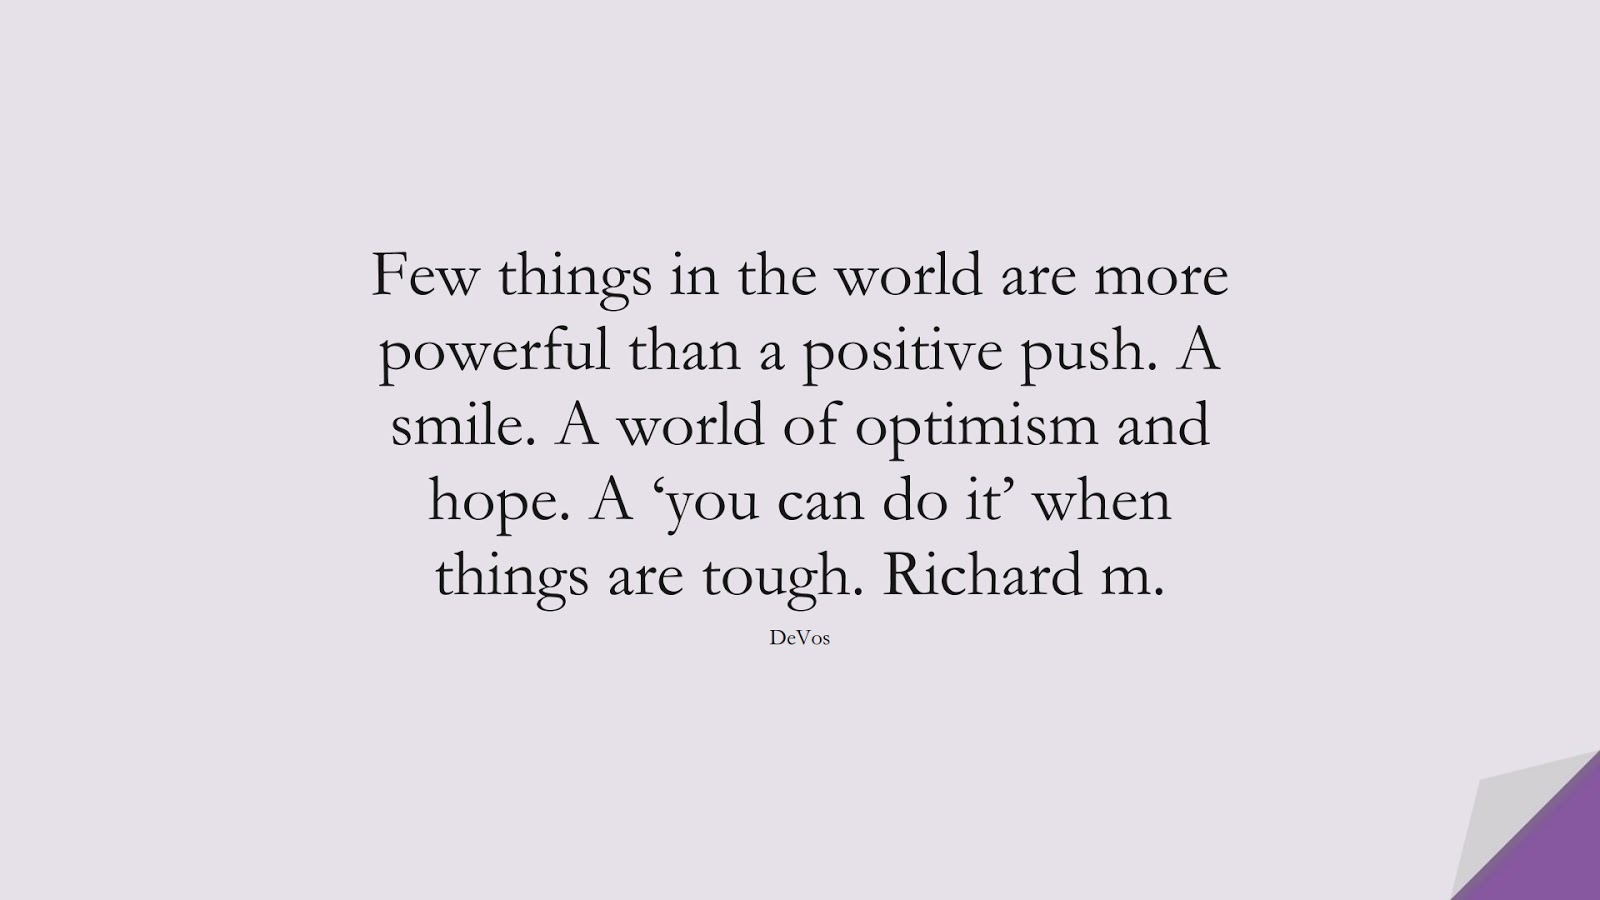 Few things in the world are more powerful than a positive push. A smile. A world of optimism and hope. A 'you can do it' when things are tough. Richard m. (DeVos);  #PositiveQuotes